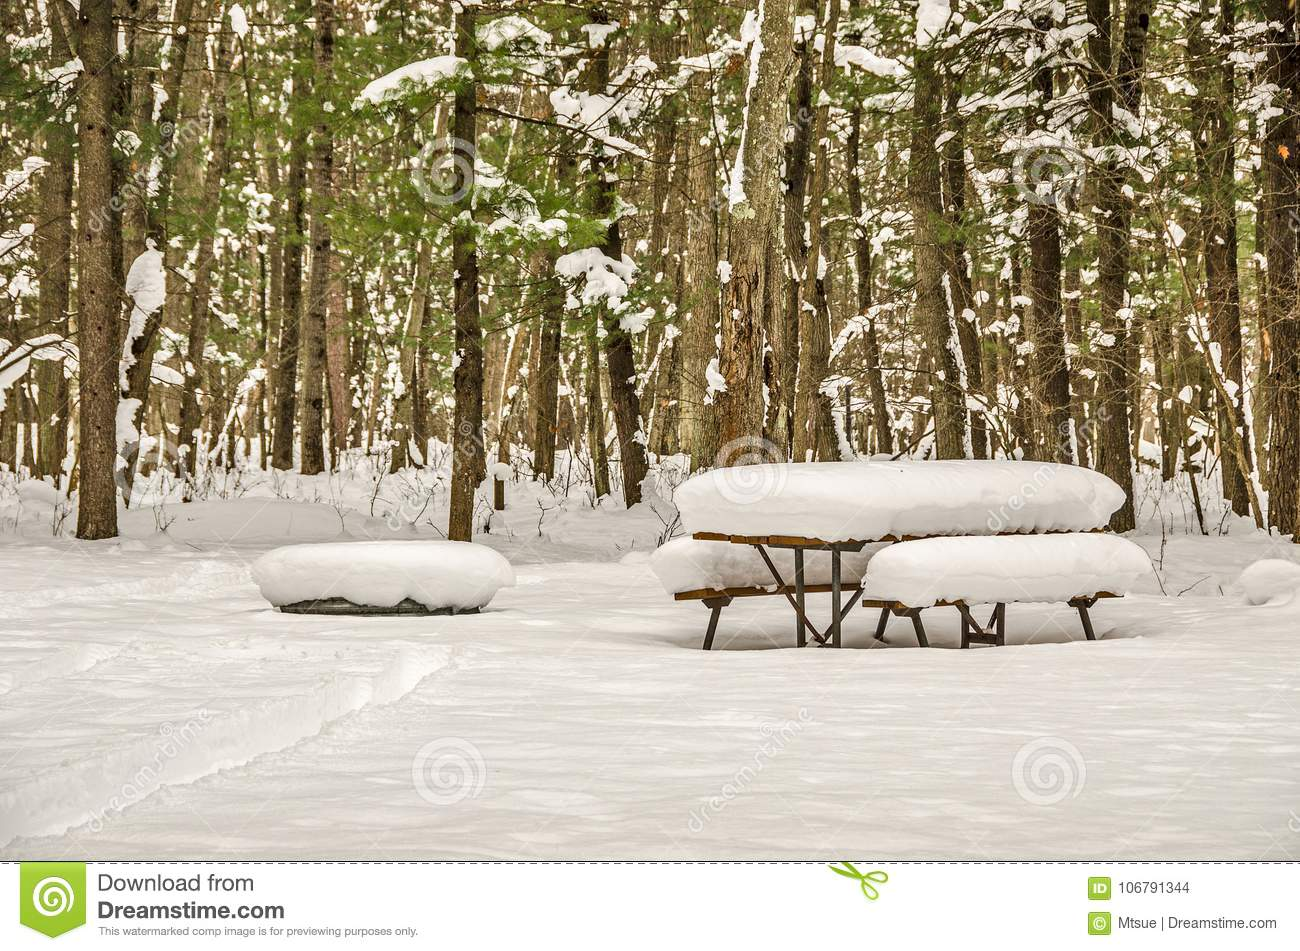 Winter Picnic Conditions Stock Photo Image Of Conditions - Fire picnic table